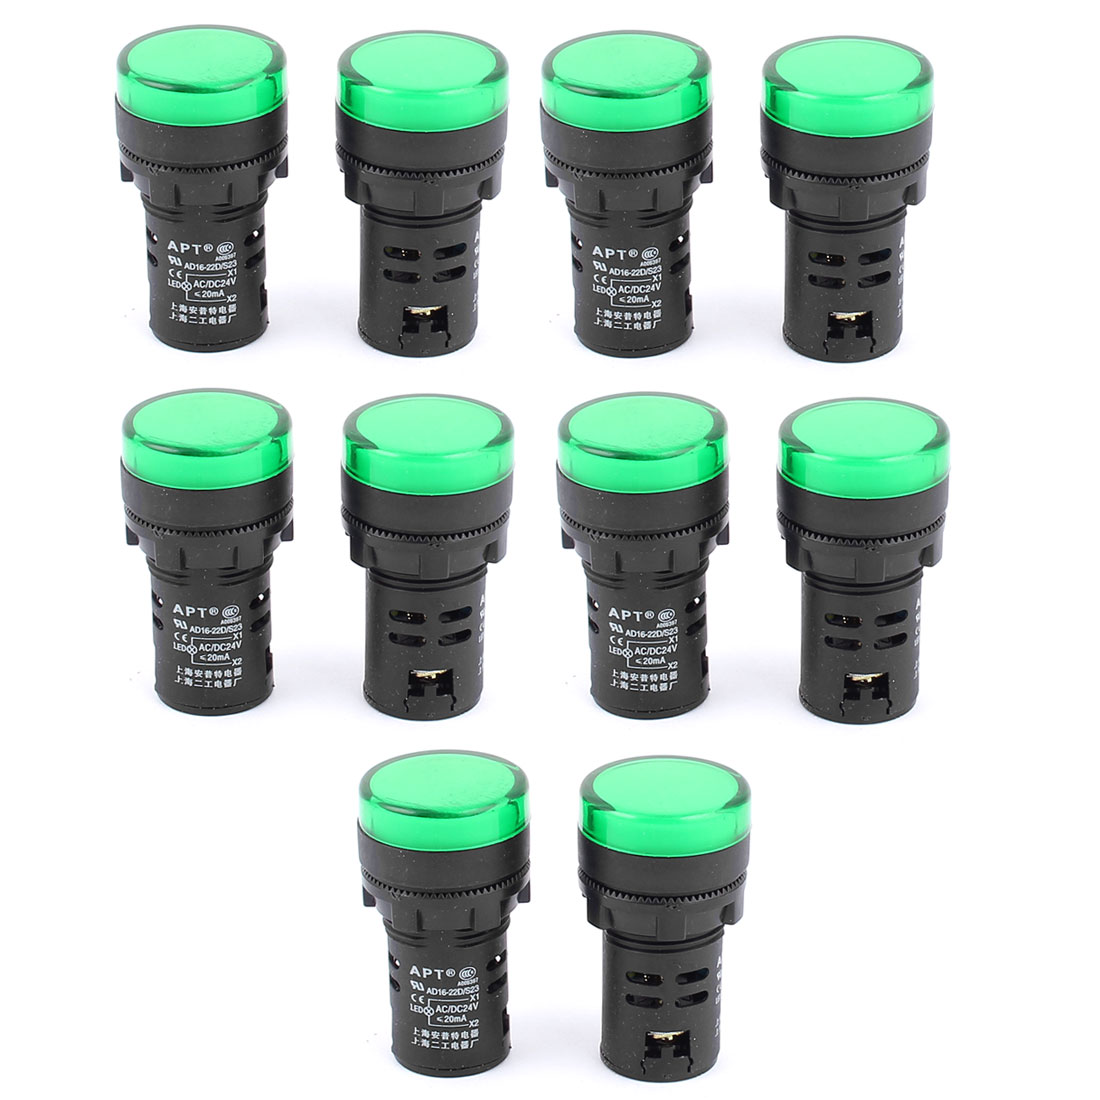 10pcs 21mm Mounting Dia Green LED Indicator Pilot Signal Light Lamp Bulbs AC 24V 20mA